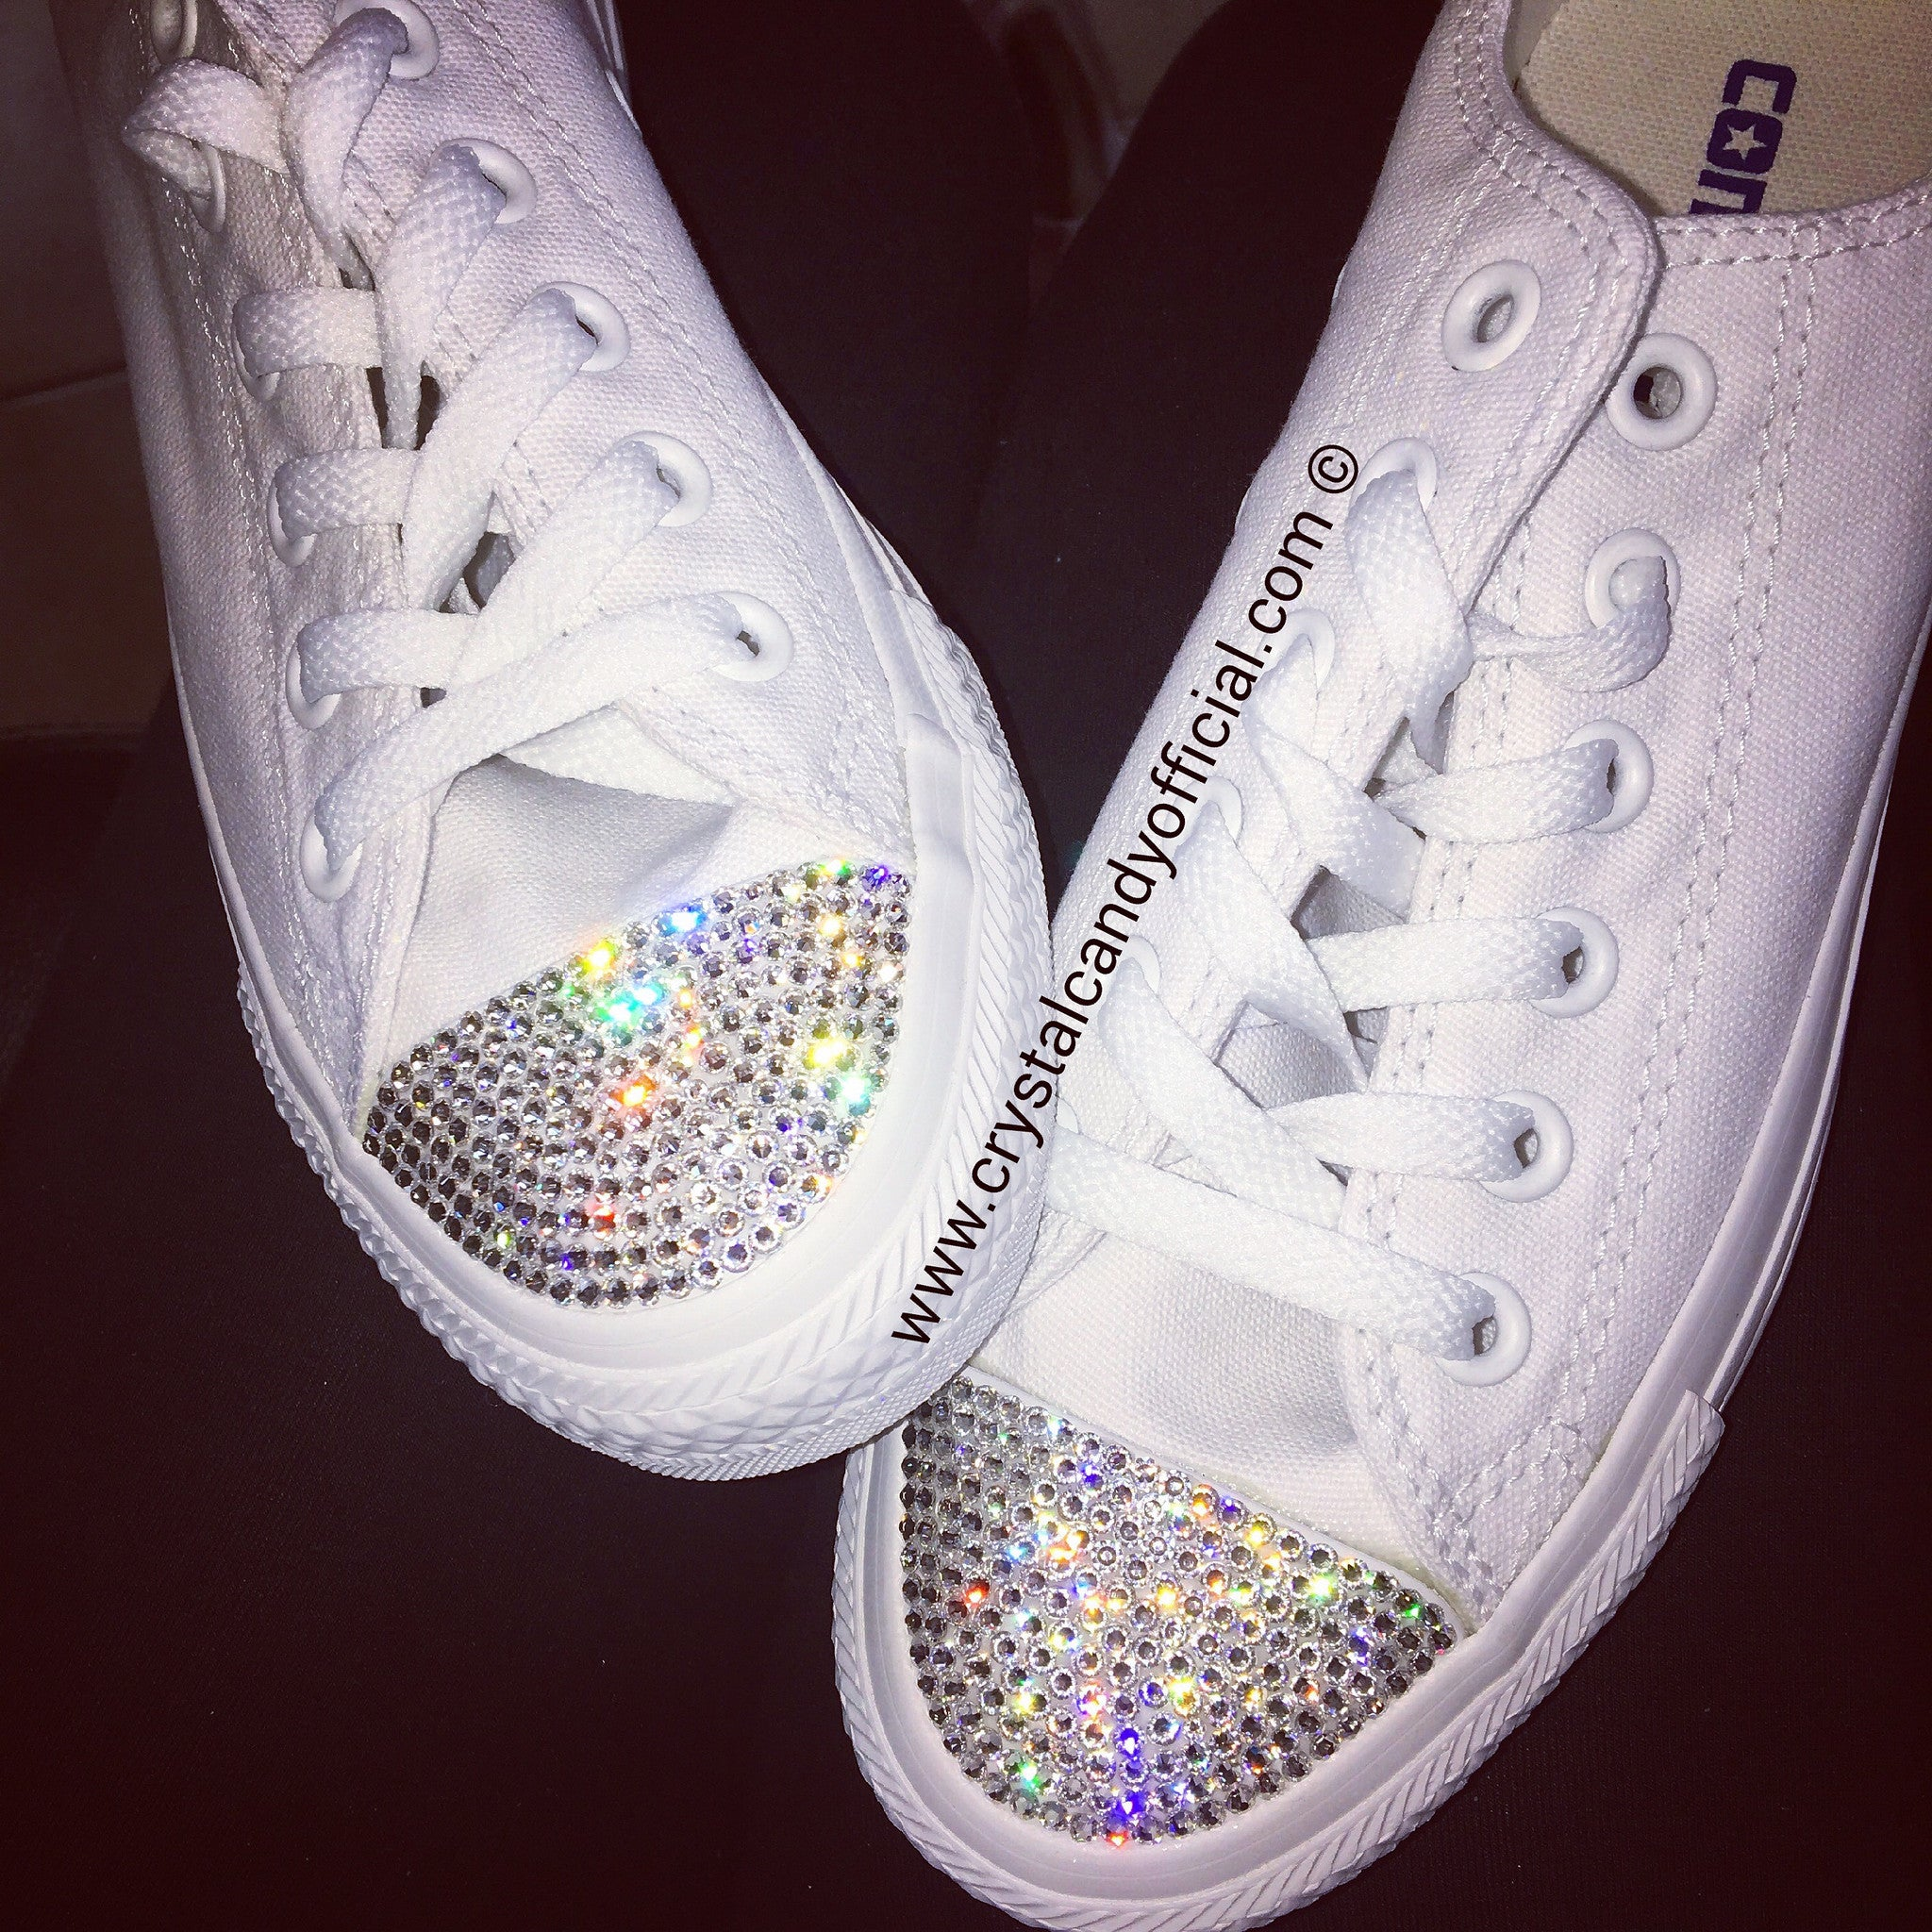 f0b2a8a13e4b62 Crystal Converse in White Mono - Crystal Candy Limited